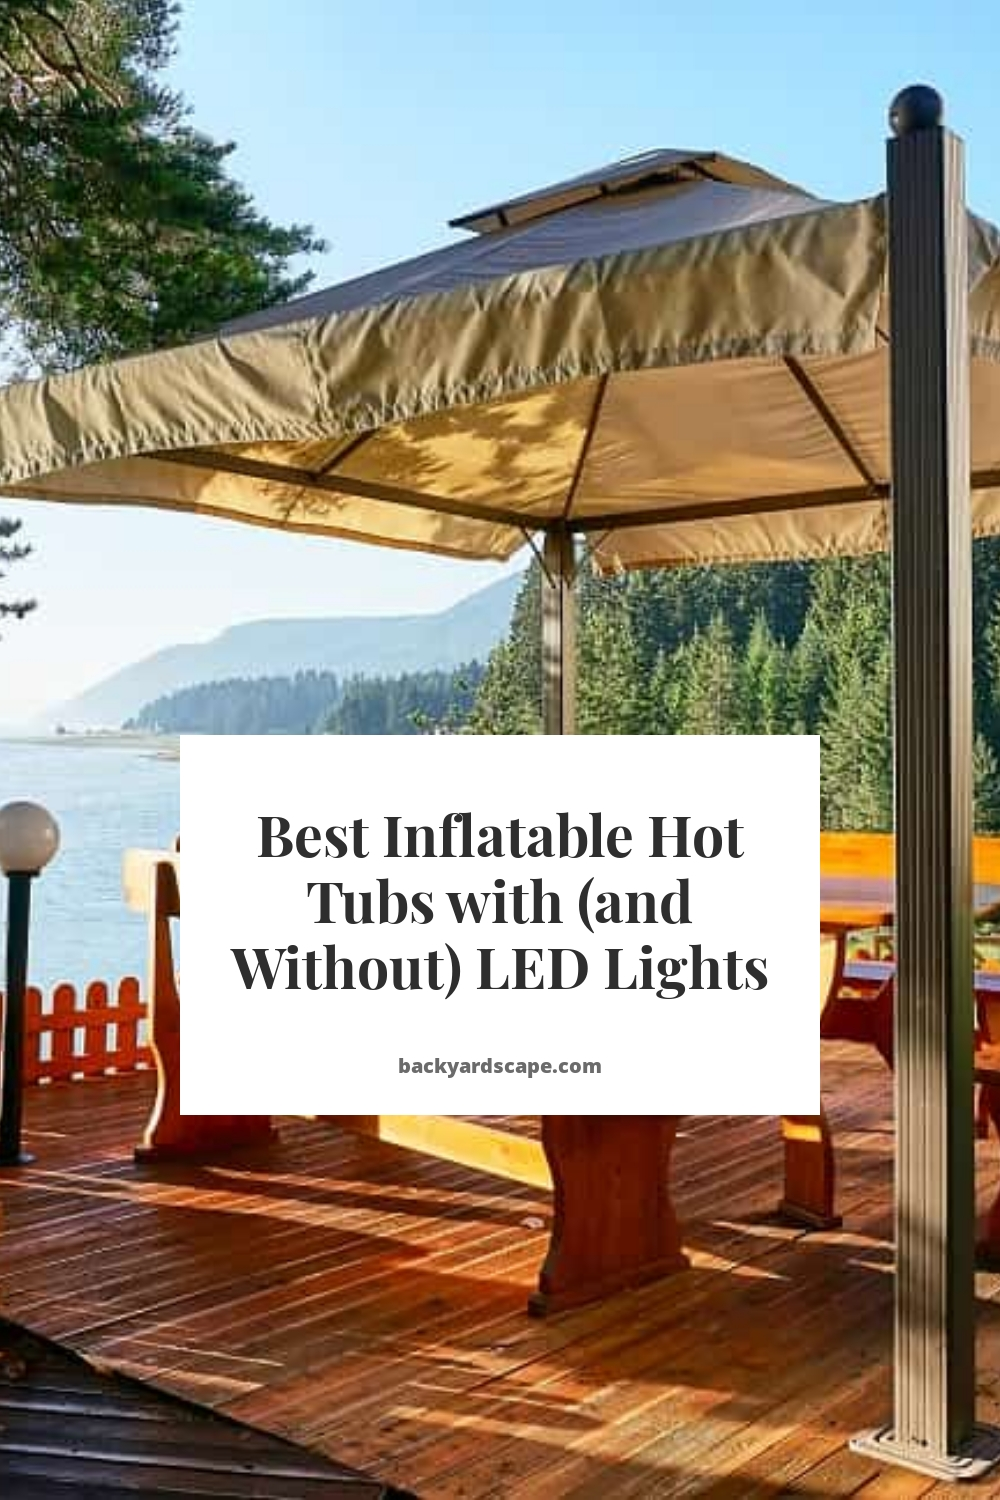 Best Inflatable Hot Tubs with (and Without) LED Lights